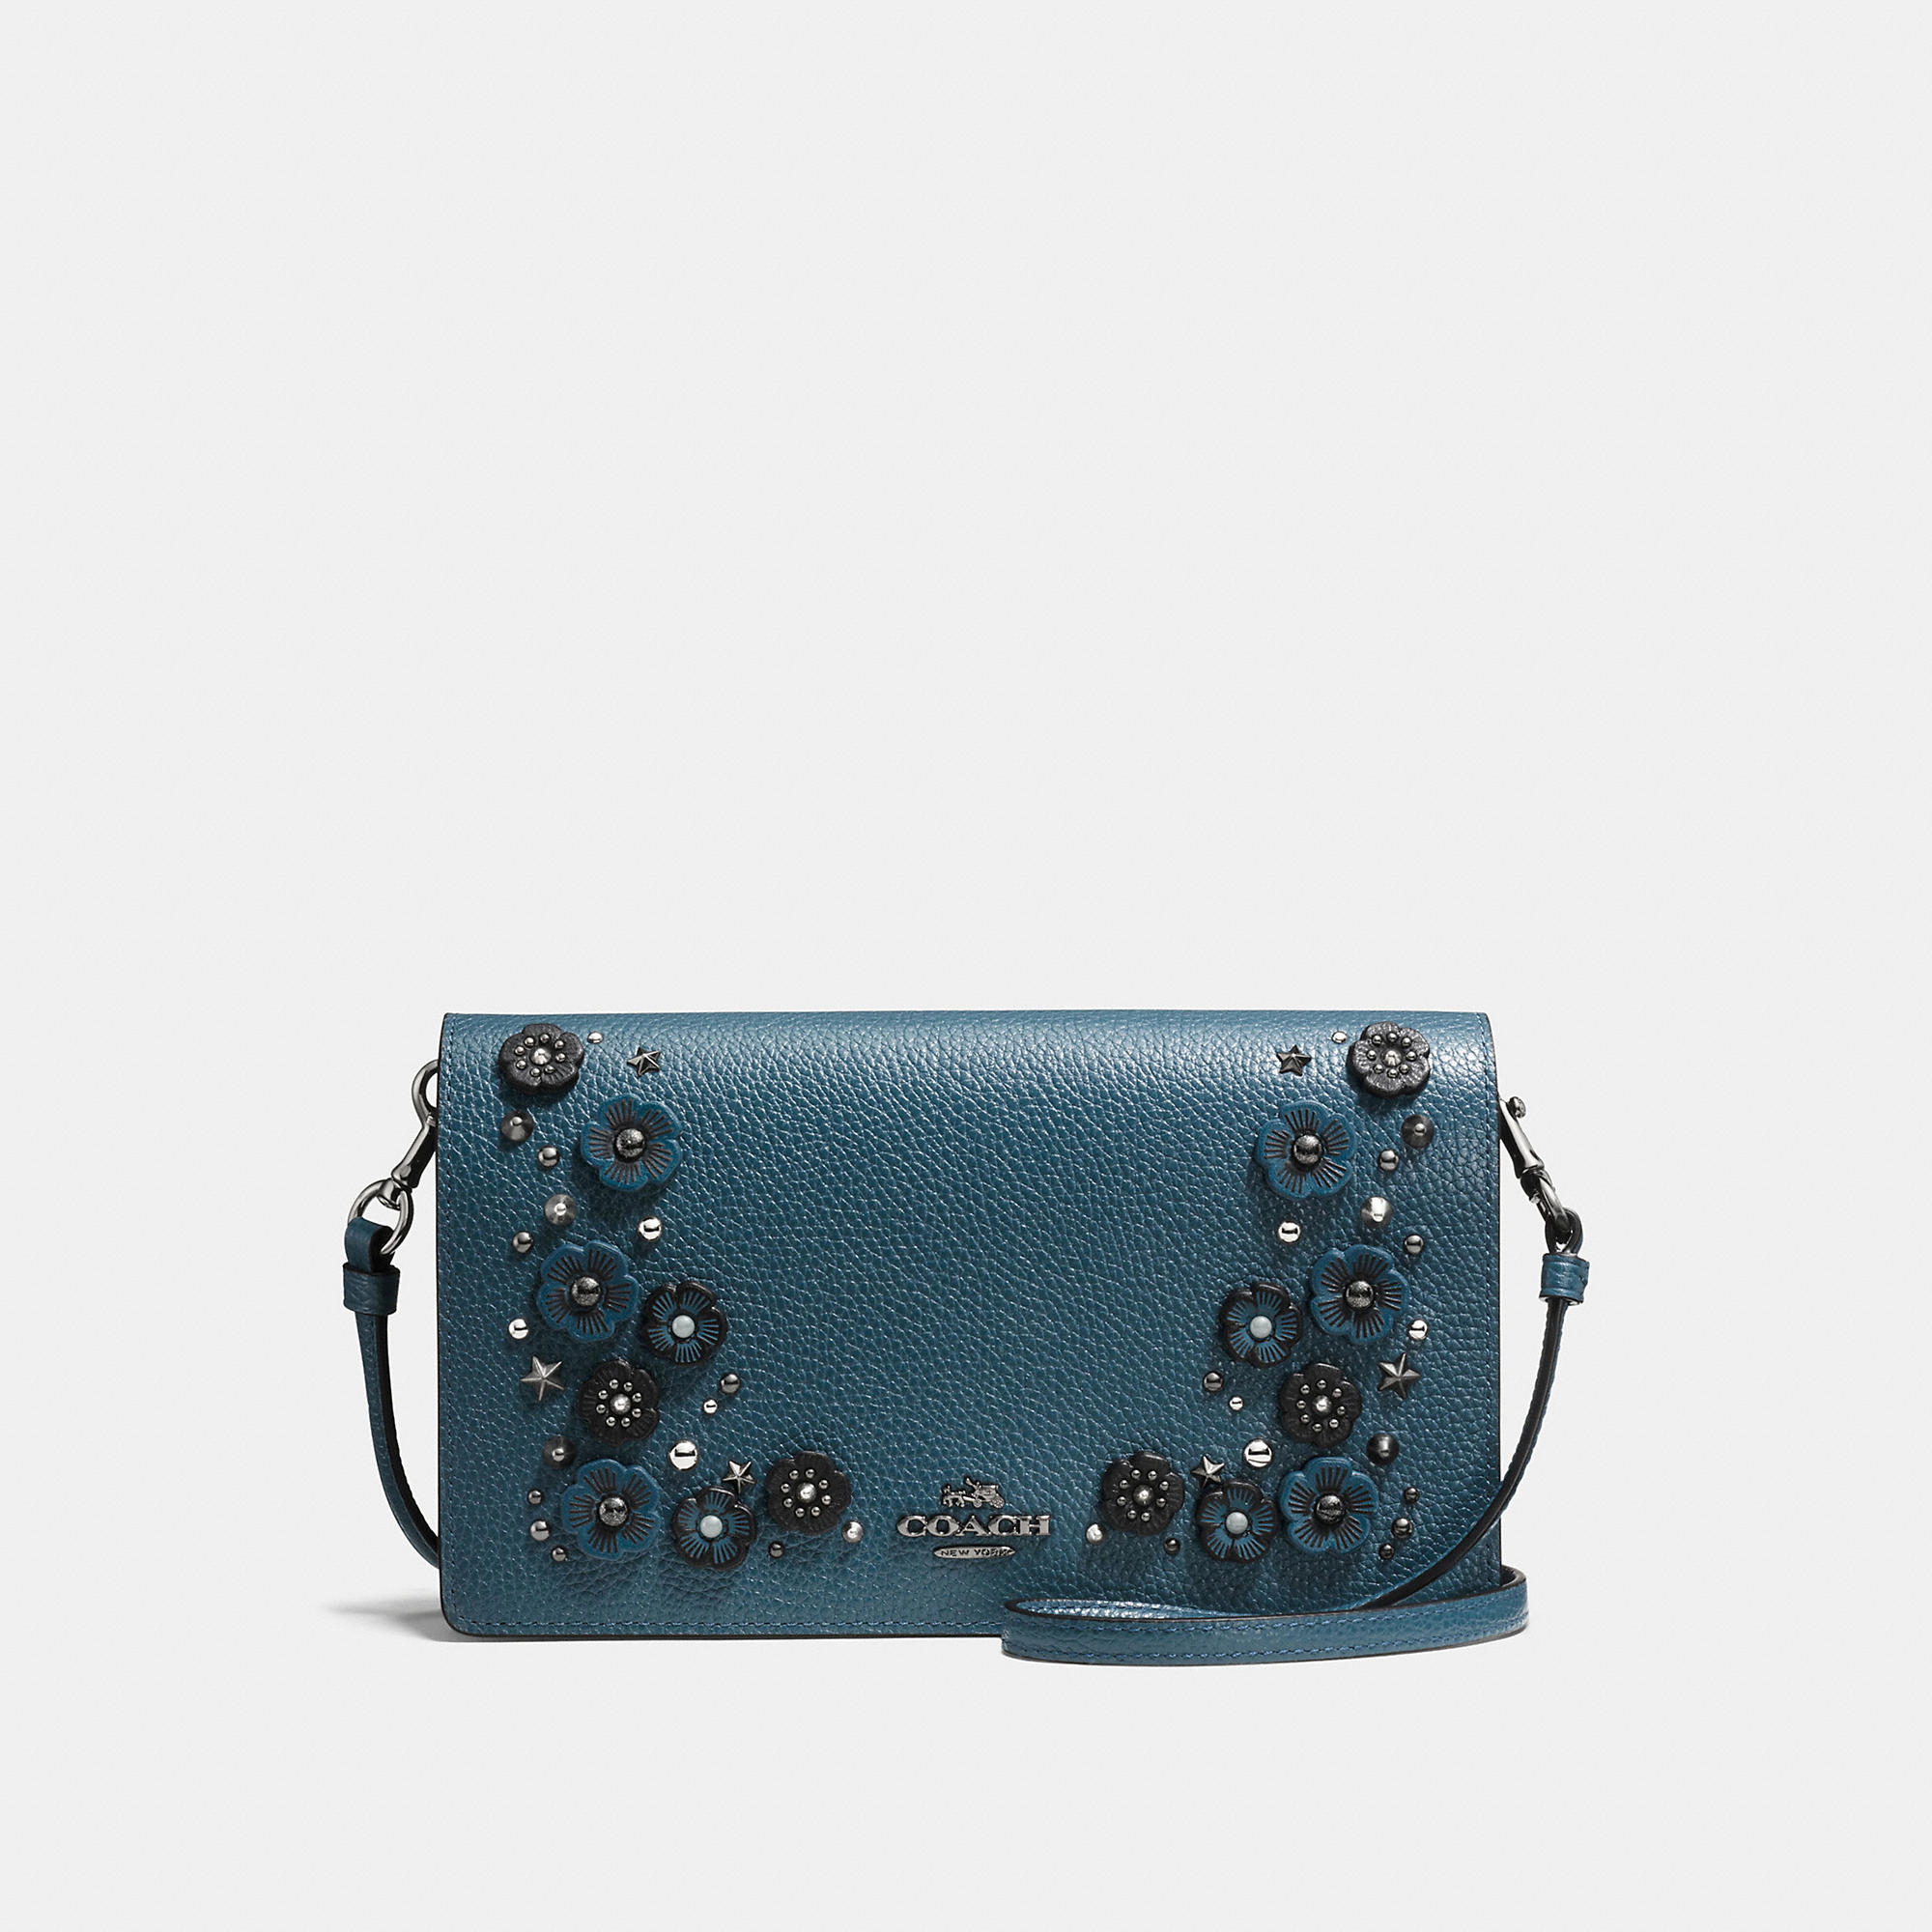 Coach Foldover Crossbody Clutch In Polished Pebble Leather With Willow Floral Detail